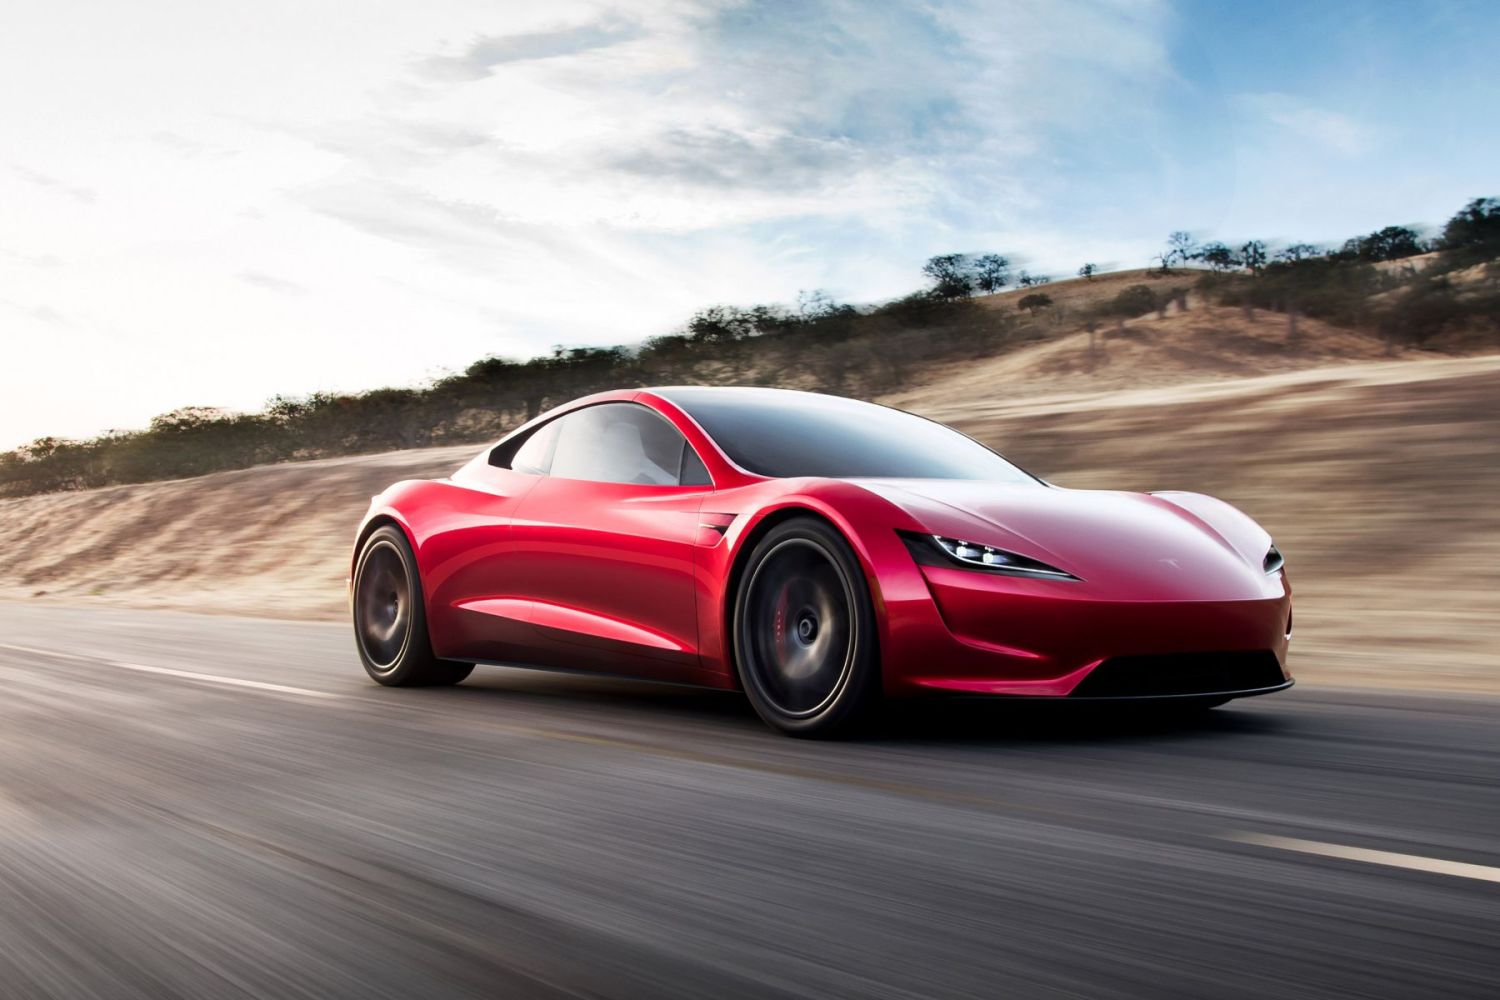 Fast forward: the story of the electric supercar